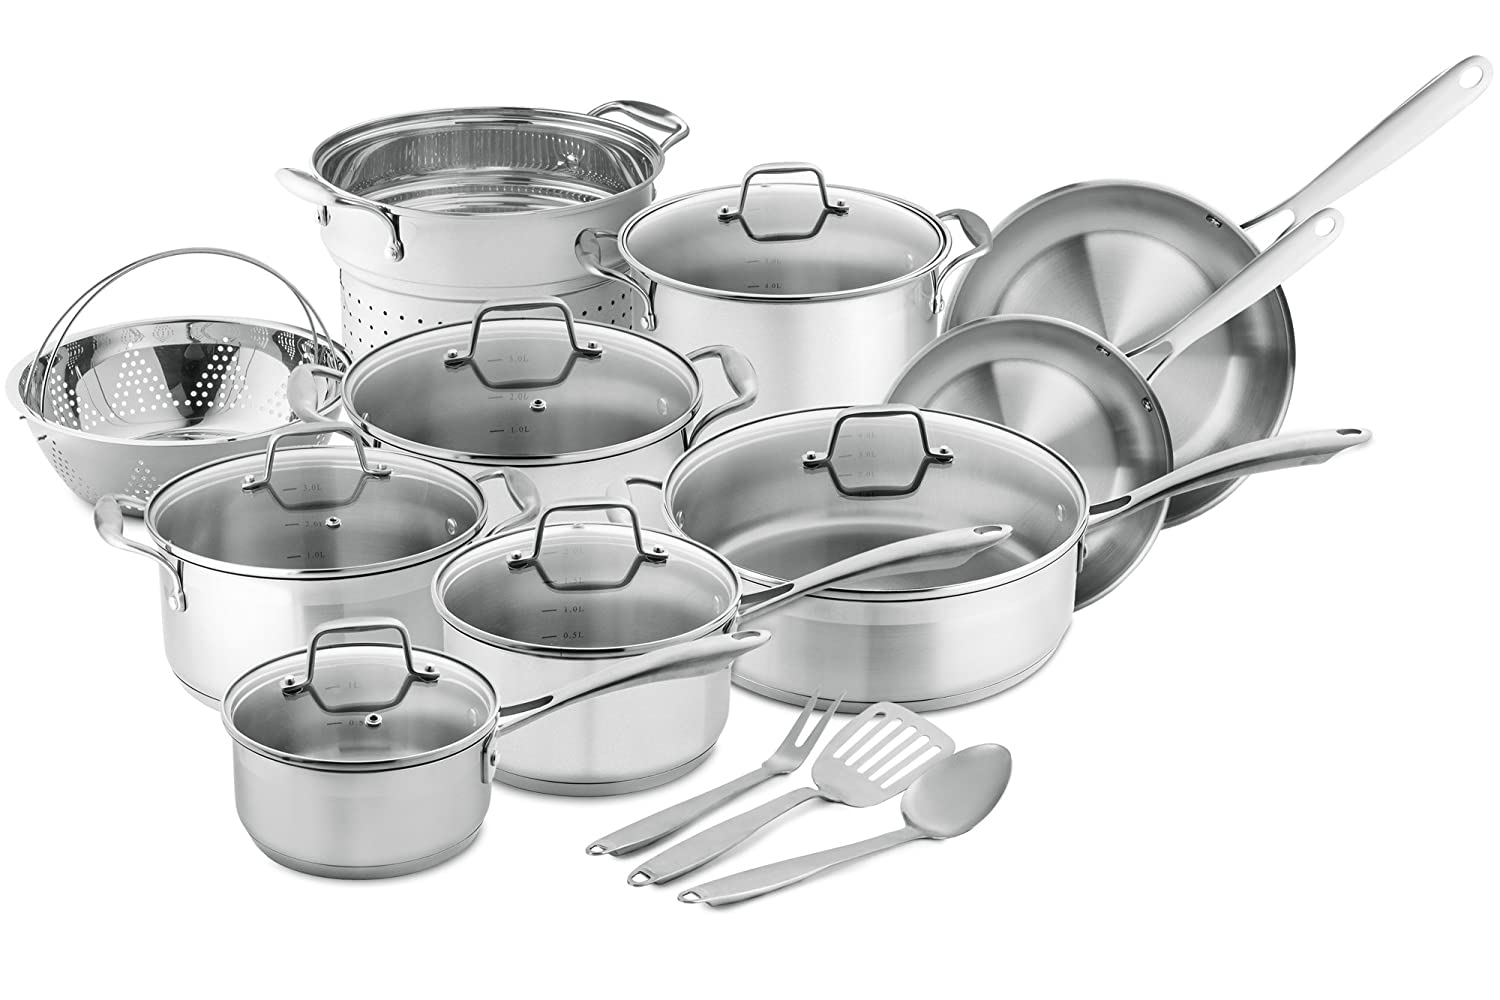 Chef's Star Professional Grade Stainless Steel 17 Piece Pots & Pans Set